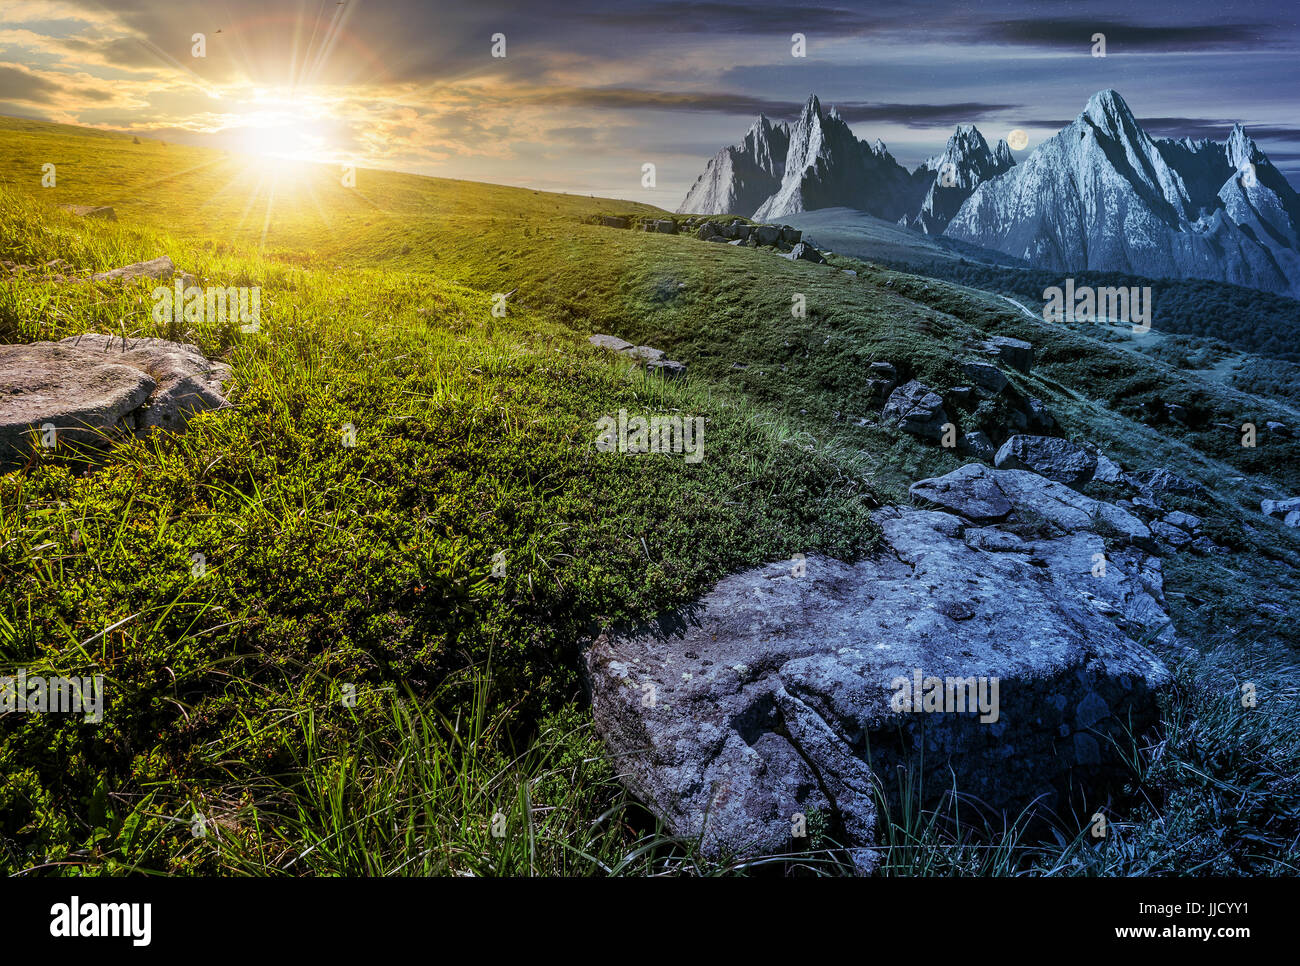 Day and night time change concept in High Tatra mountain summer landscape. Sun and moon over meadow with huge stones - Stock Image